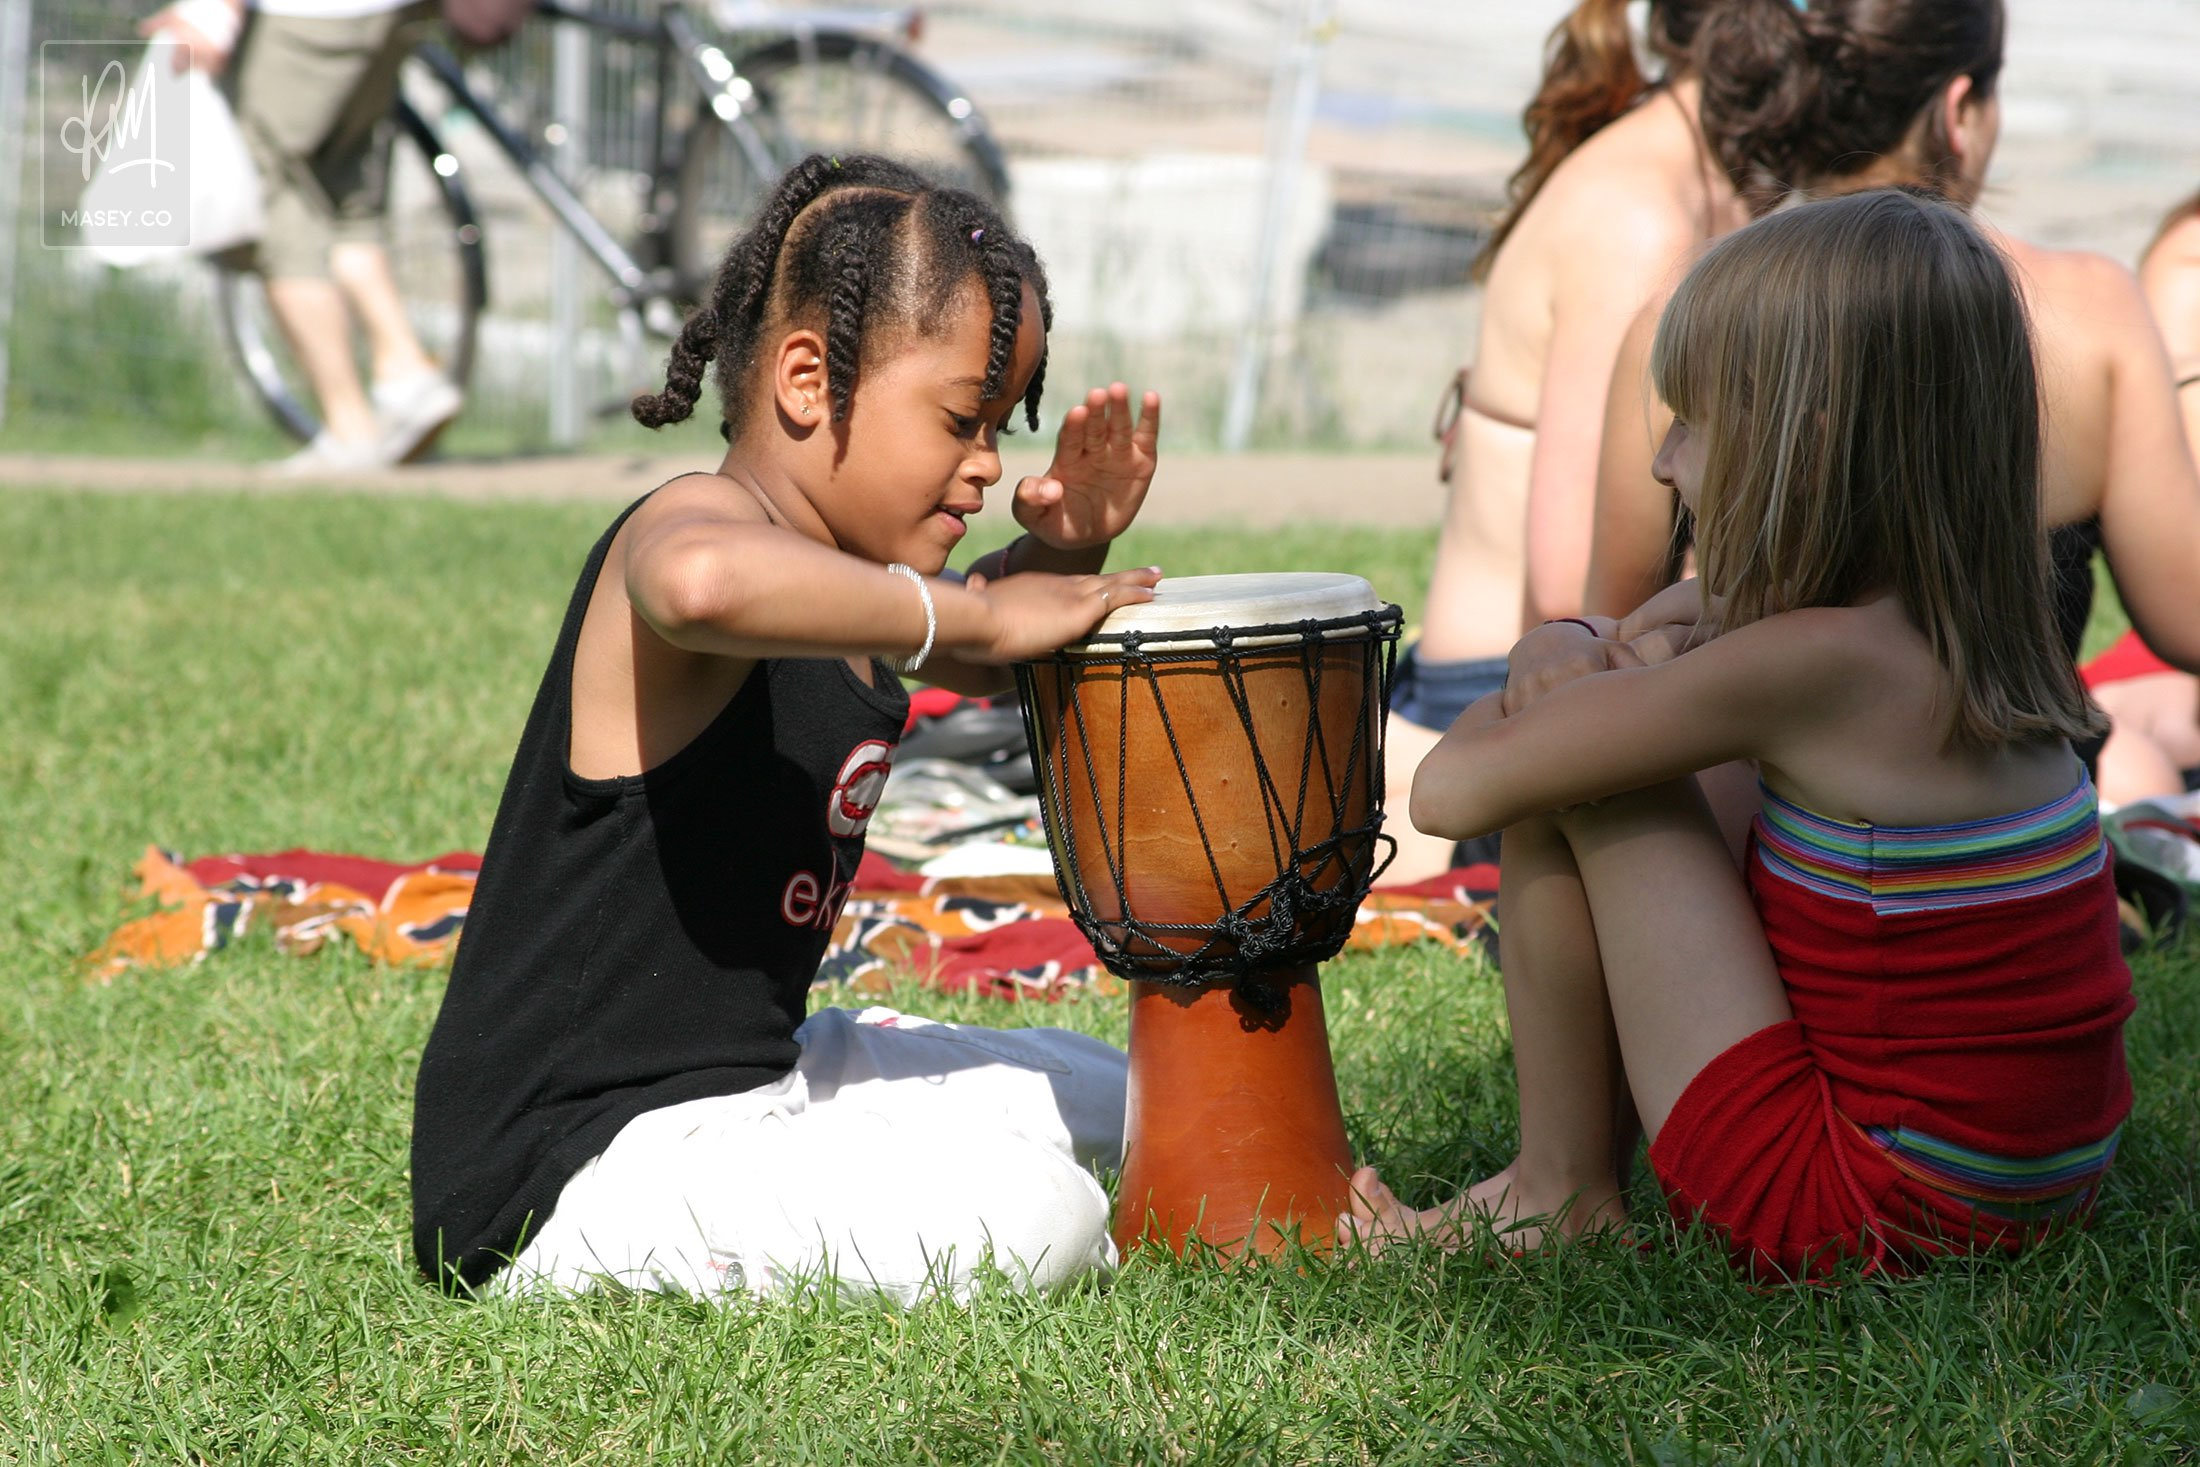 Tams-Tam percussionists of the future